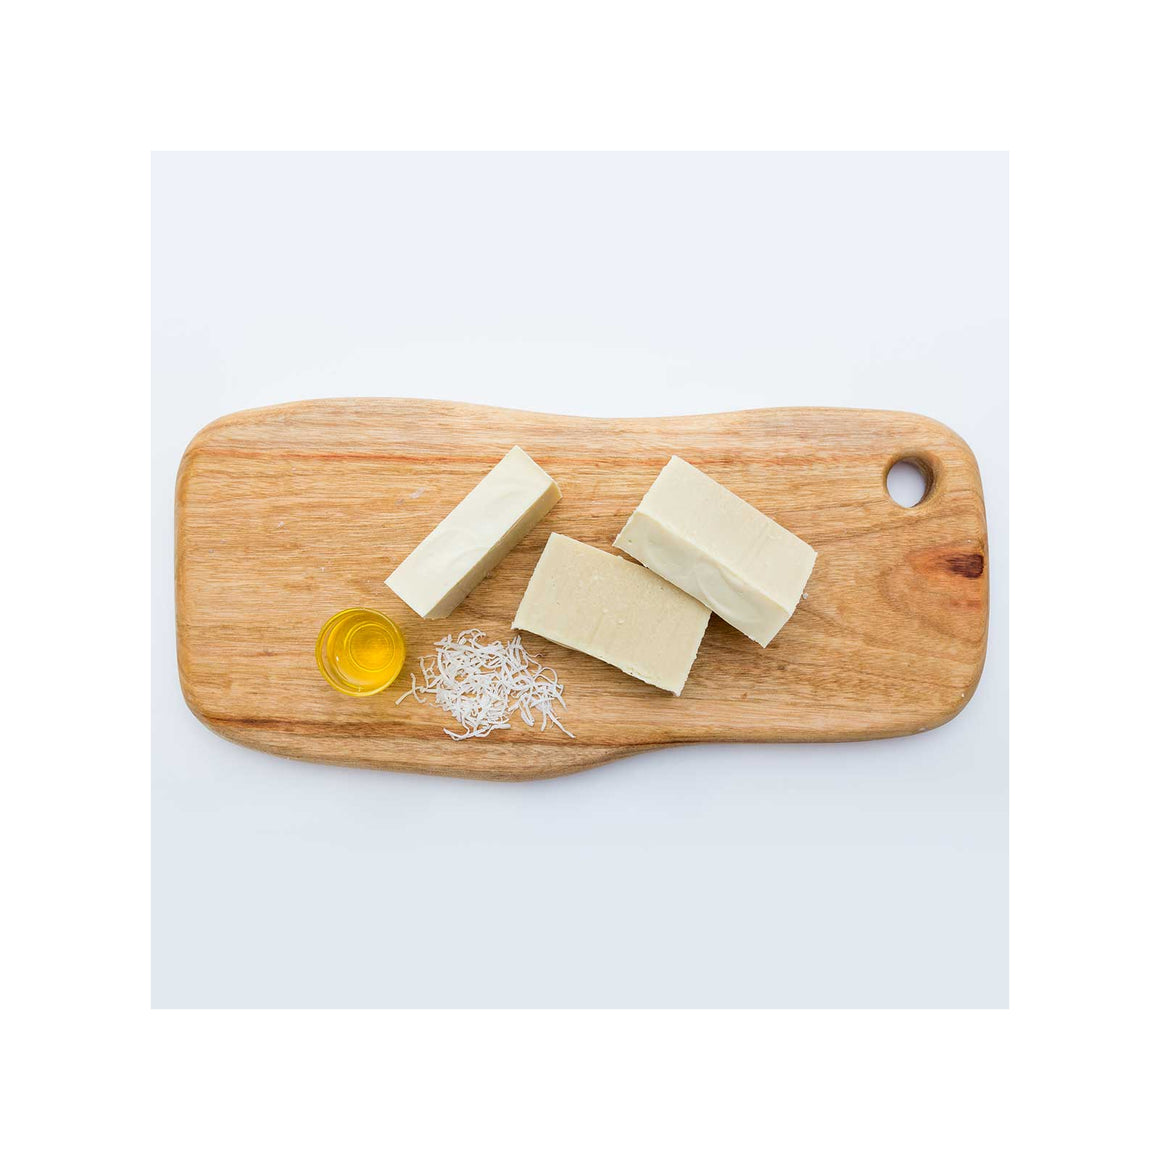 Colive Natural & Organic Soap